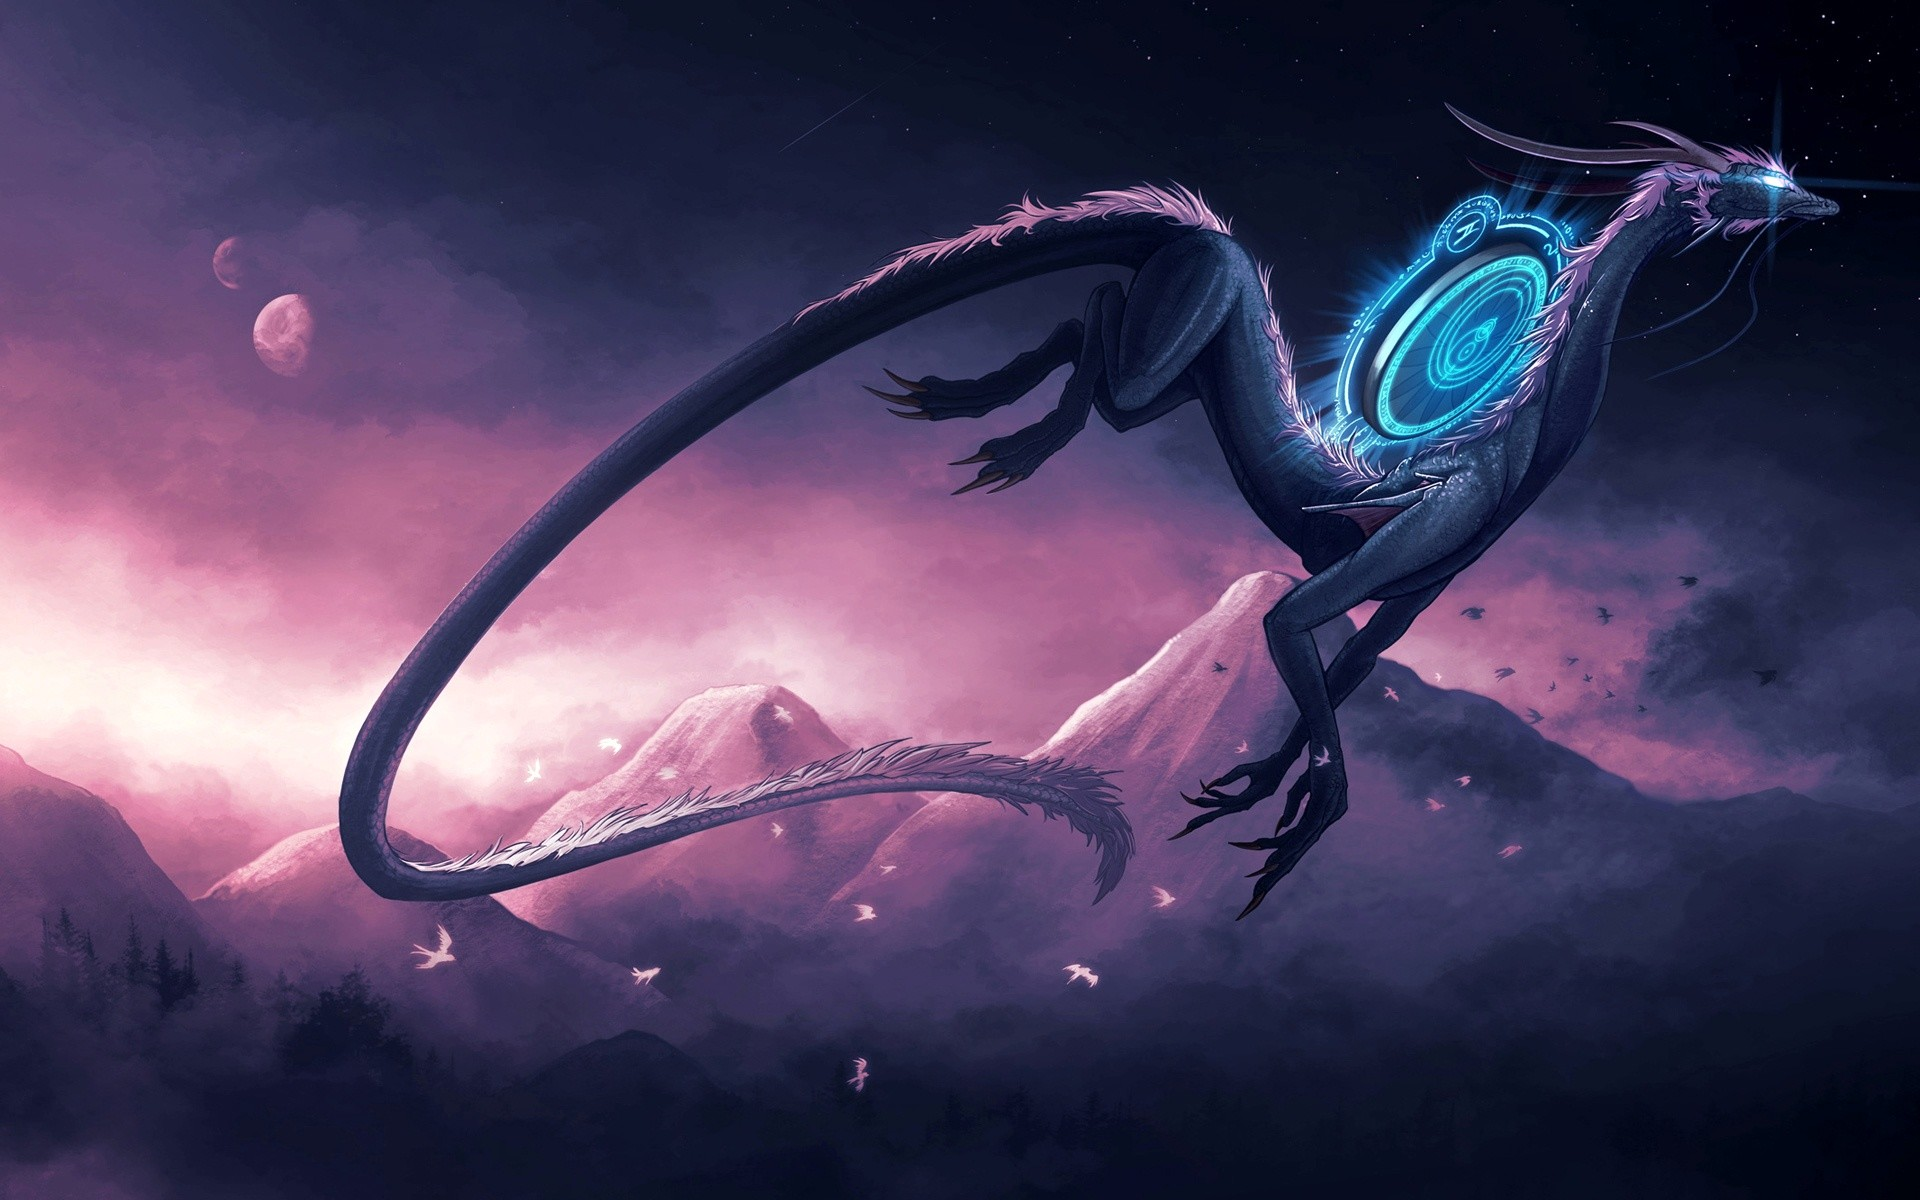 [Next Generation Wallpaper] – Furious Dragon-wide.jpg (1920×1200)   Dragons    Pinterest   Wallpaper, Dragons and Dragon pictures